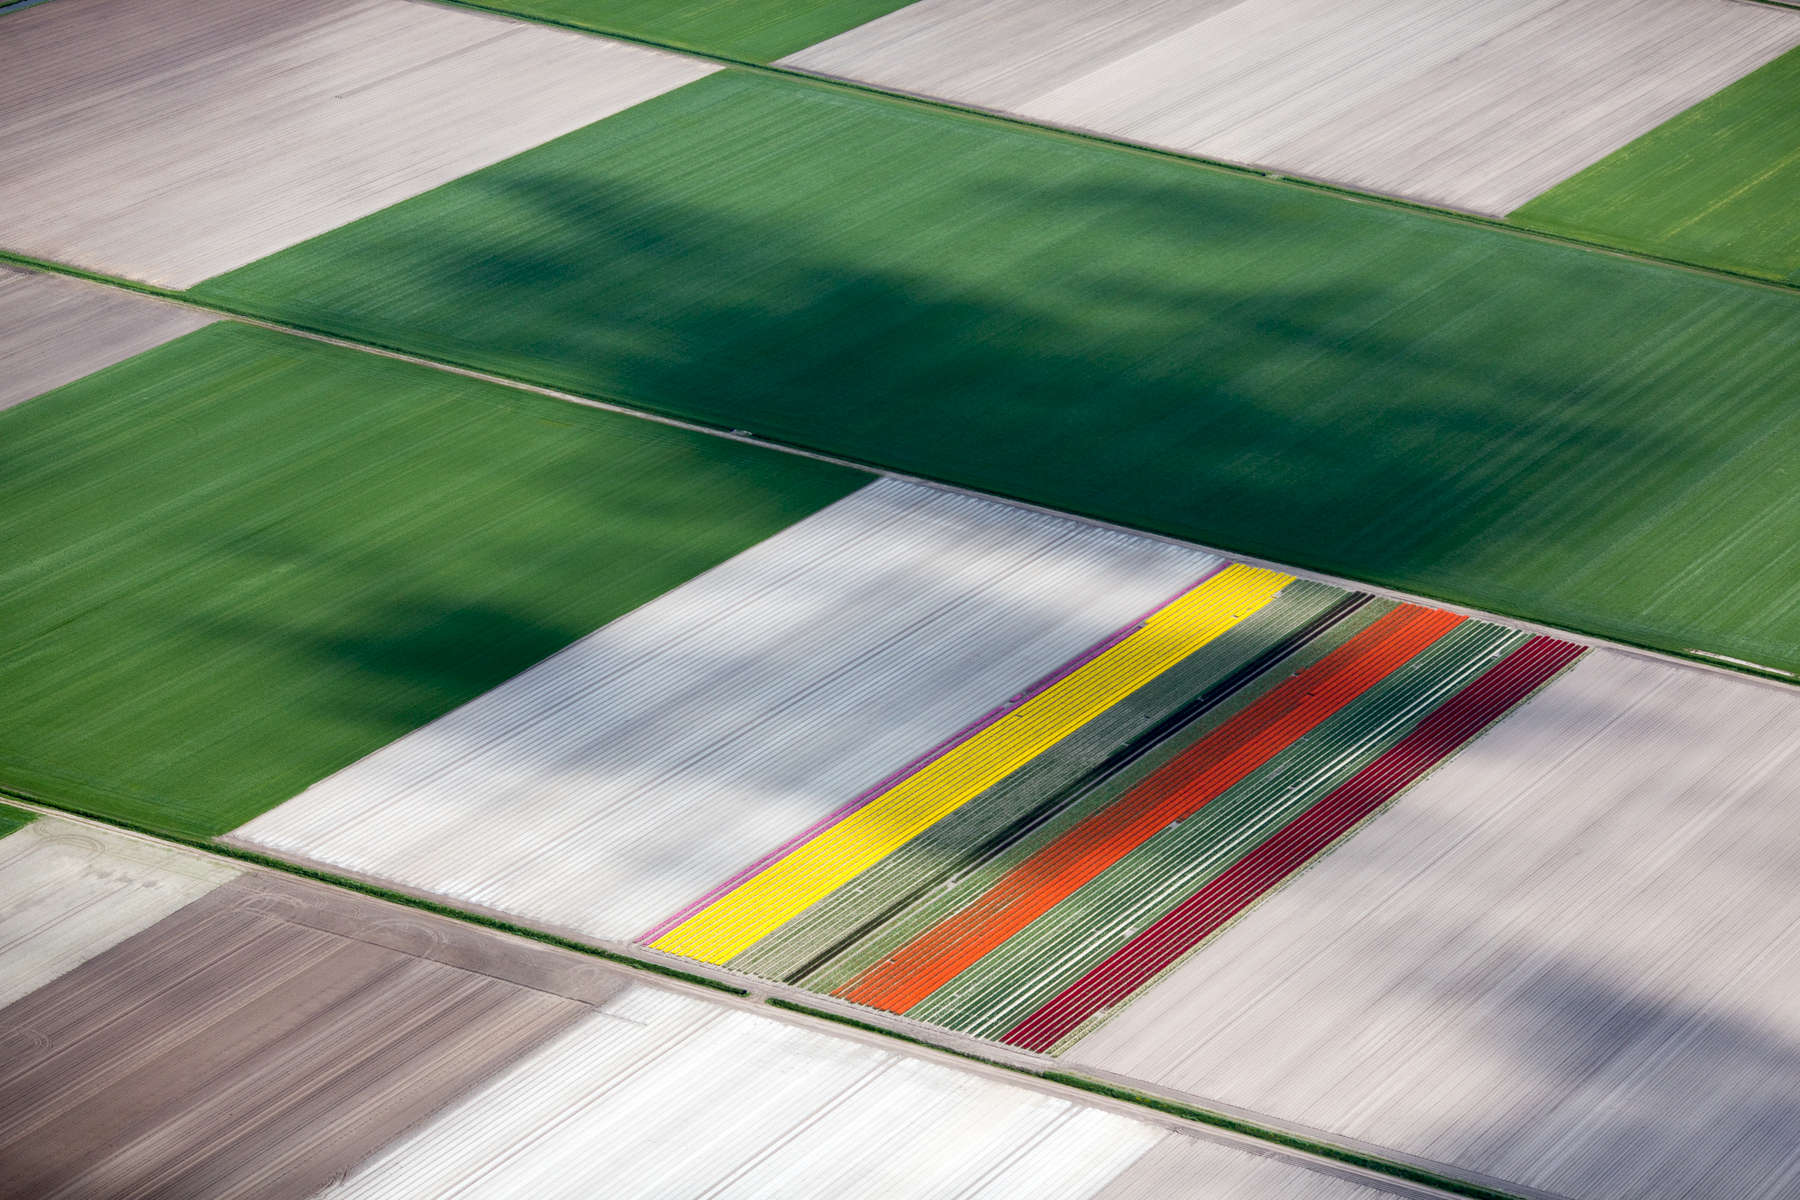 Tulip Patch, Netherlands 2015 (150502-0116)